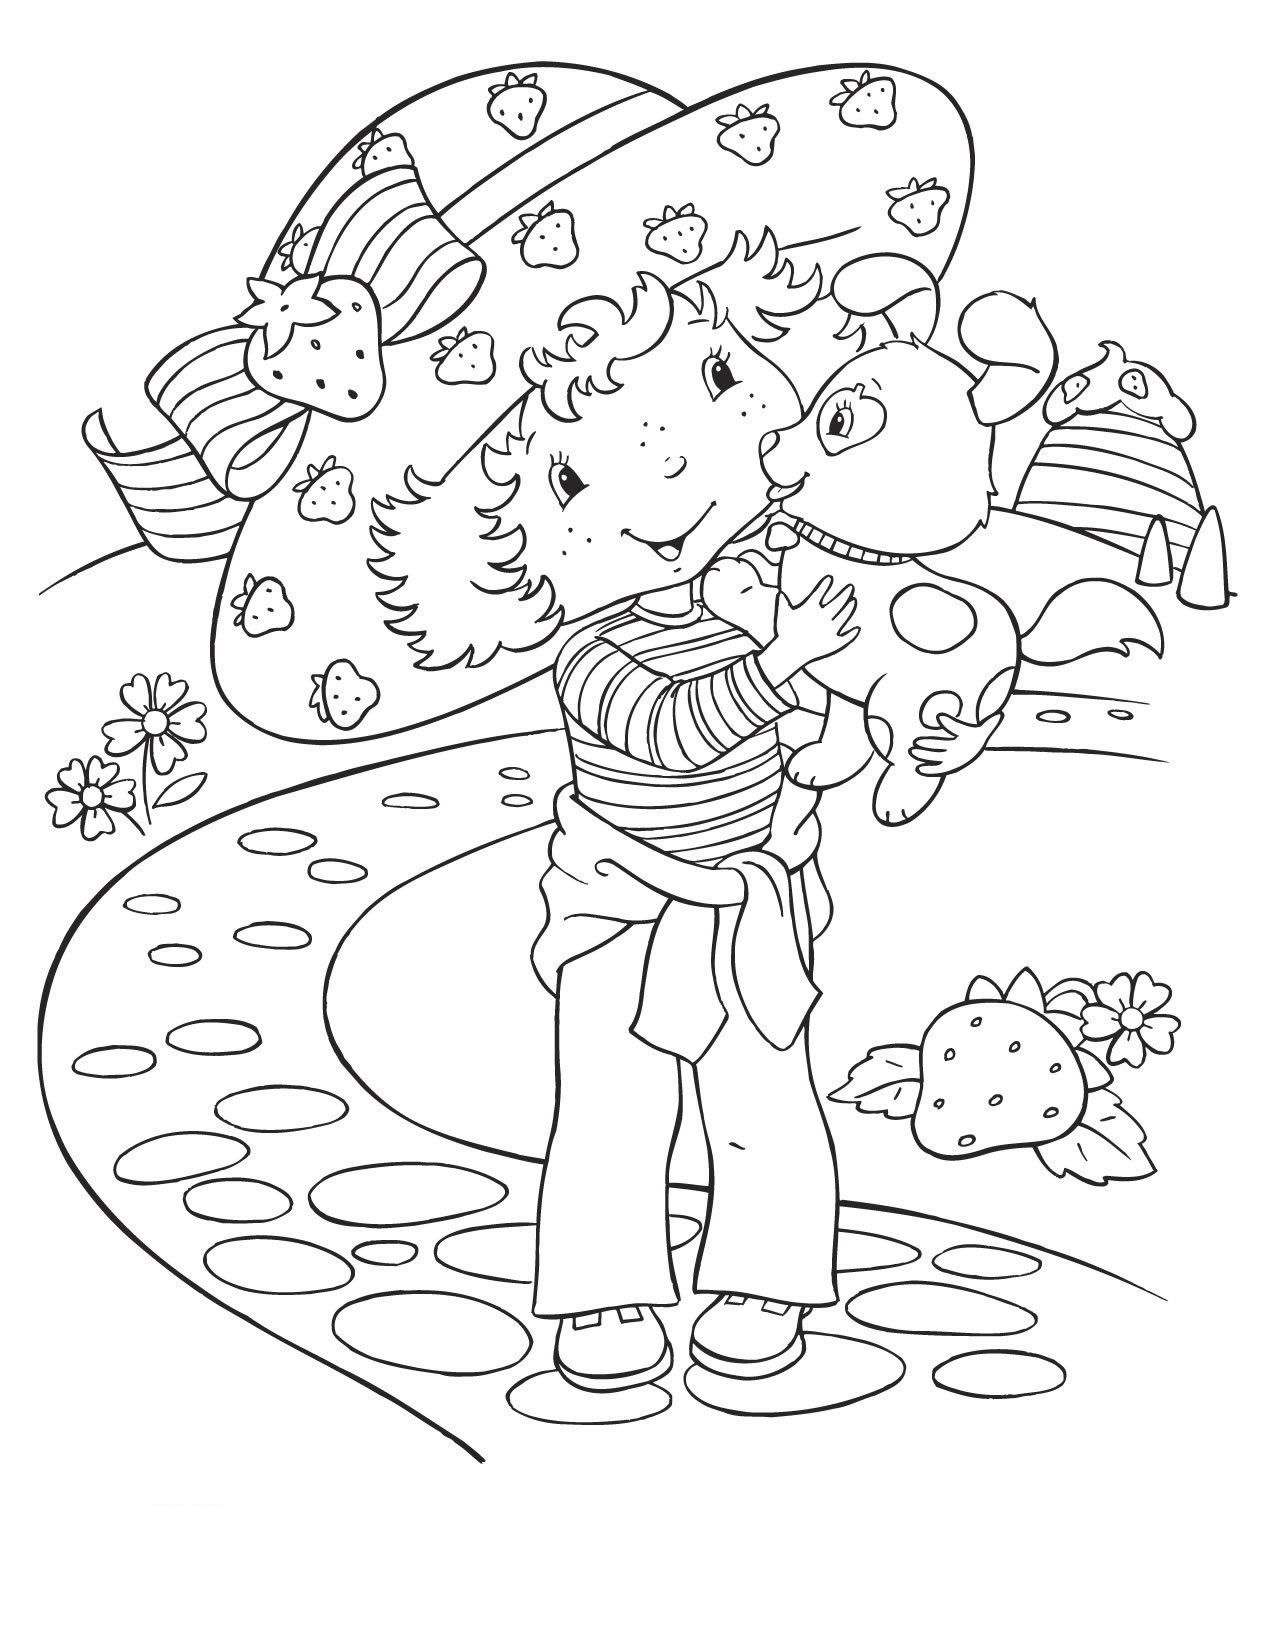 Simple Strawberry Shortcake coloring page